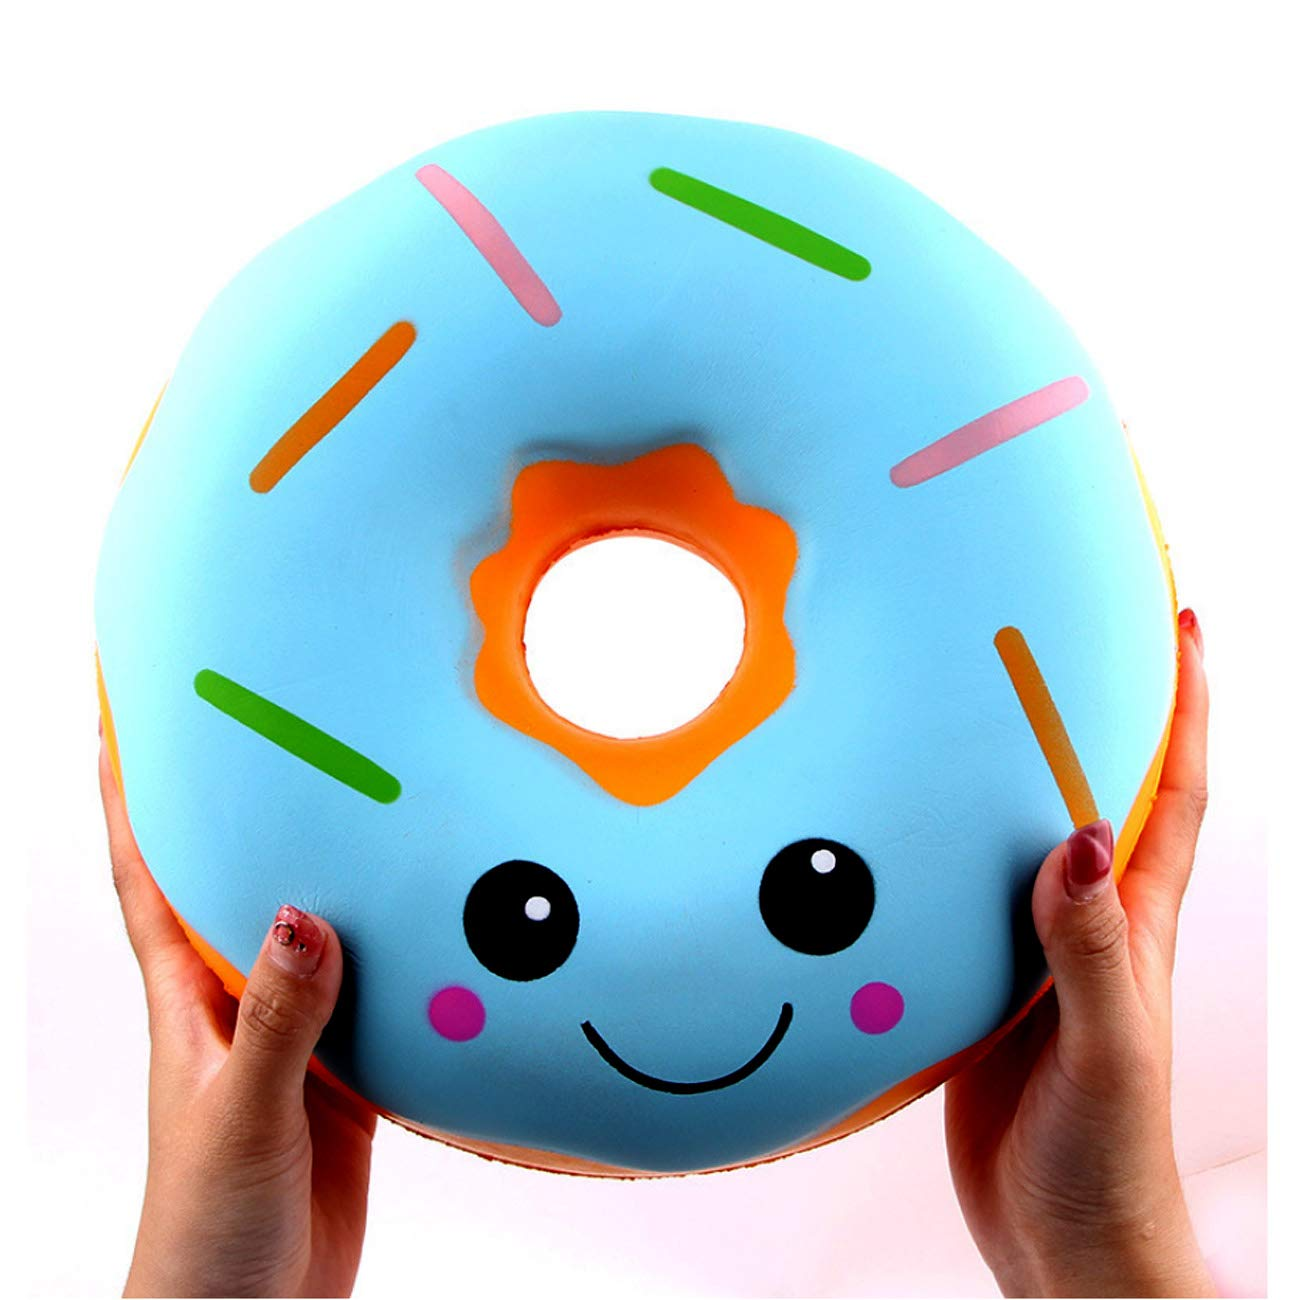 ACCOCO 10'' Inch Large Slow Rising Squishy Toys, Giant Donut Jumbo Slow Rising Scented Super Soft Squeeze Squishy Food Toys Stress Relief Gift Collection (Blue Donut)